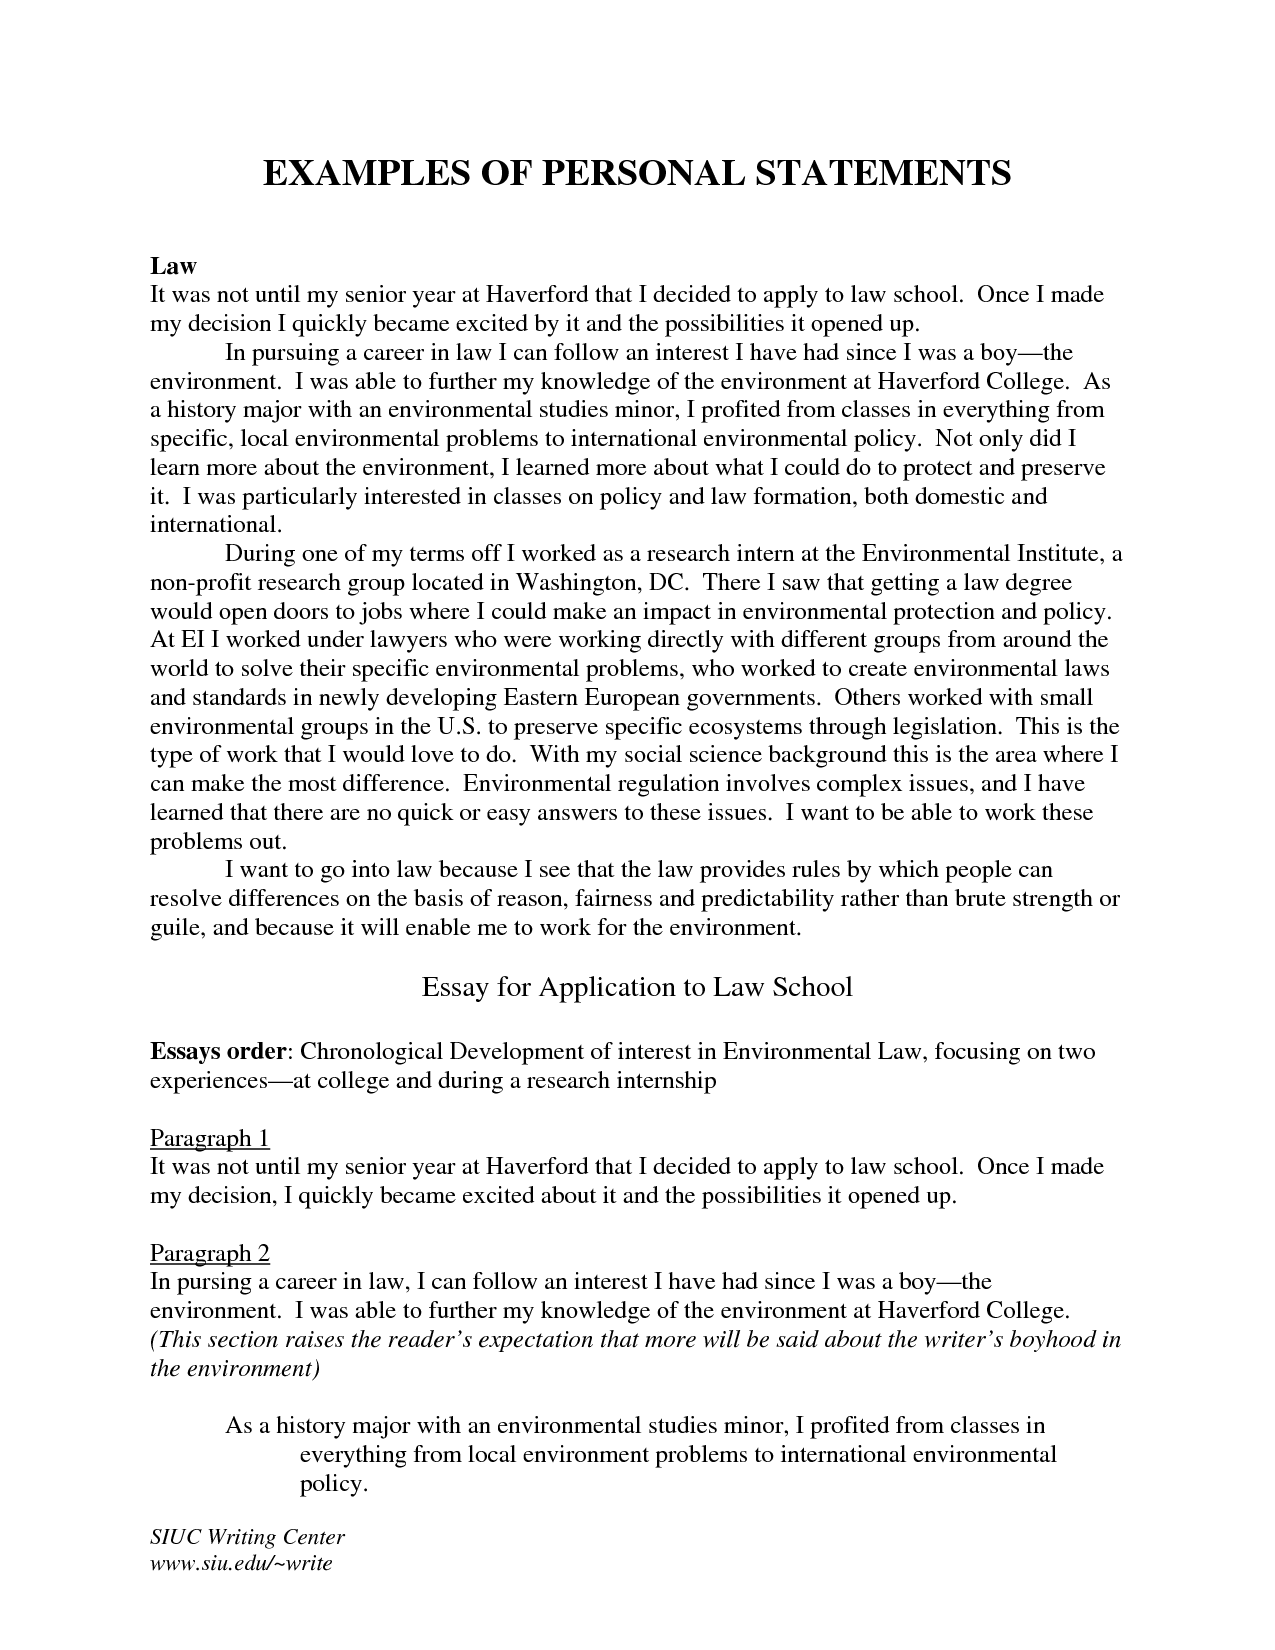 grad school essays samples offers tips on writing a statement of purpose and provides sample - Law School Essay Examples